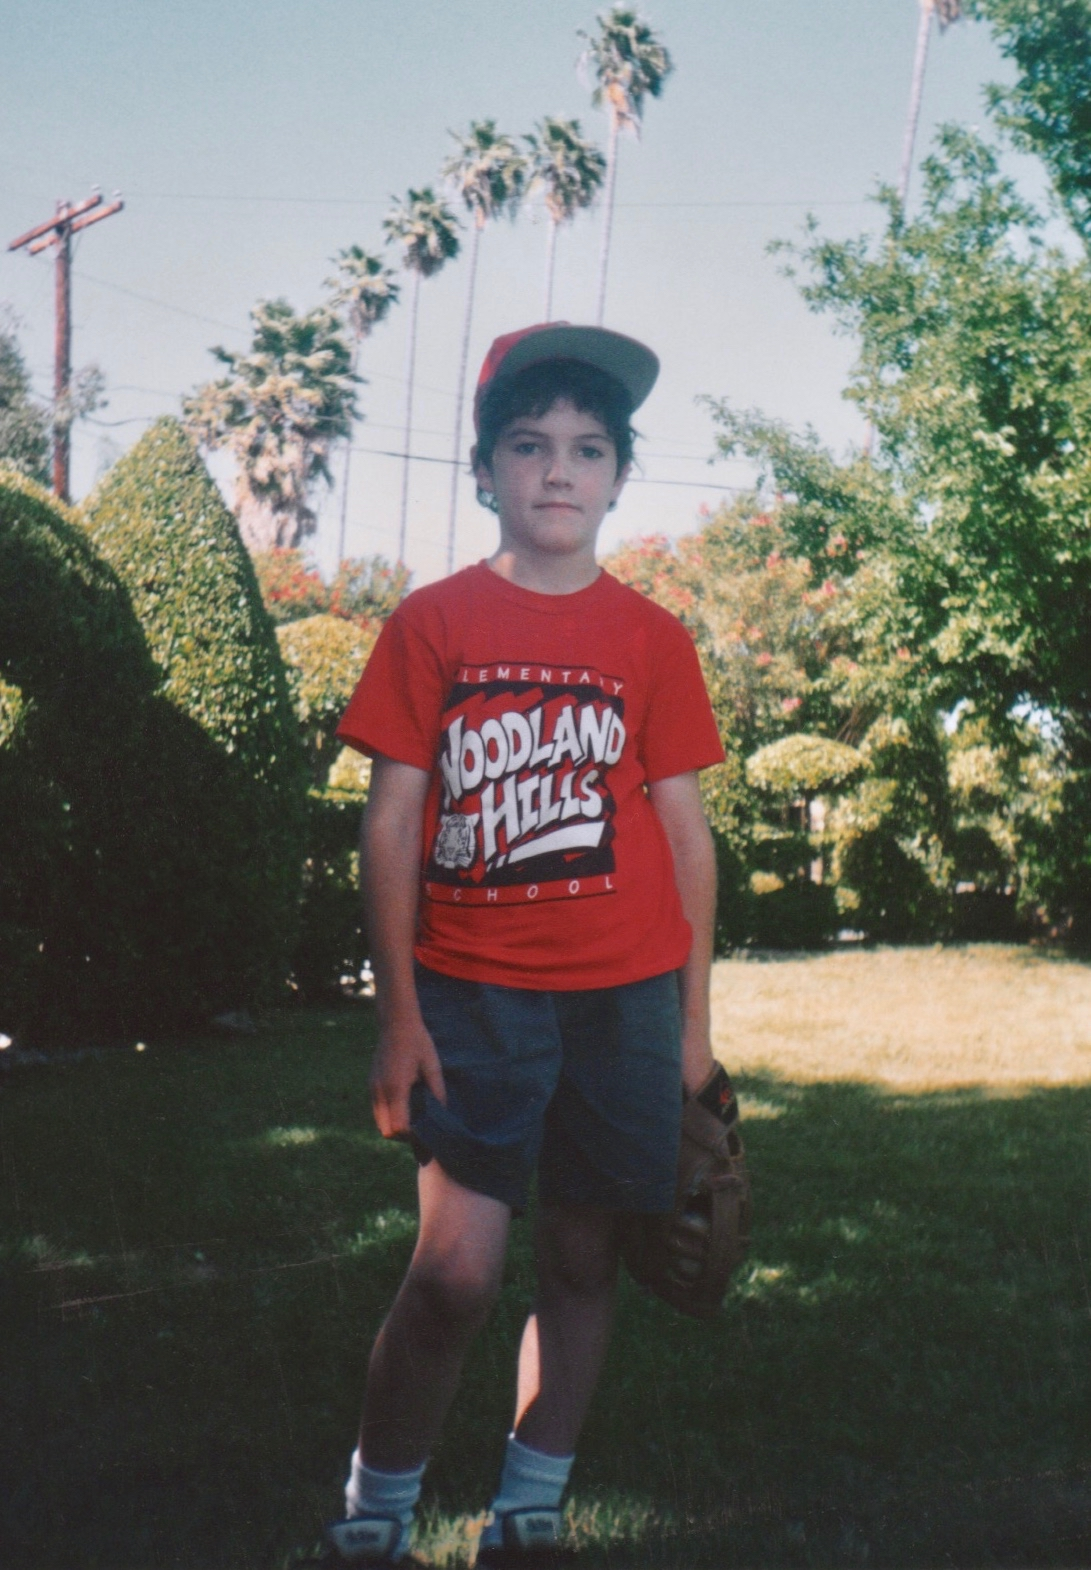 Repping the 818 back in 1997